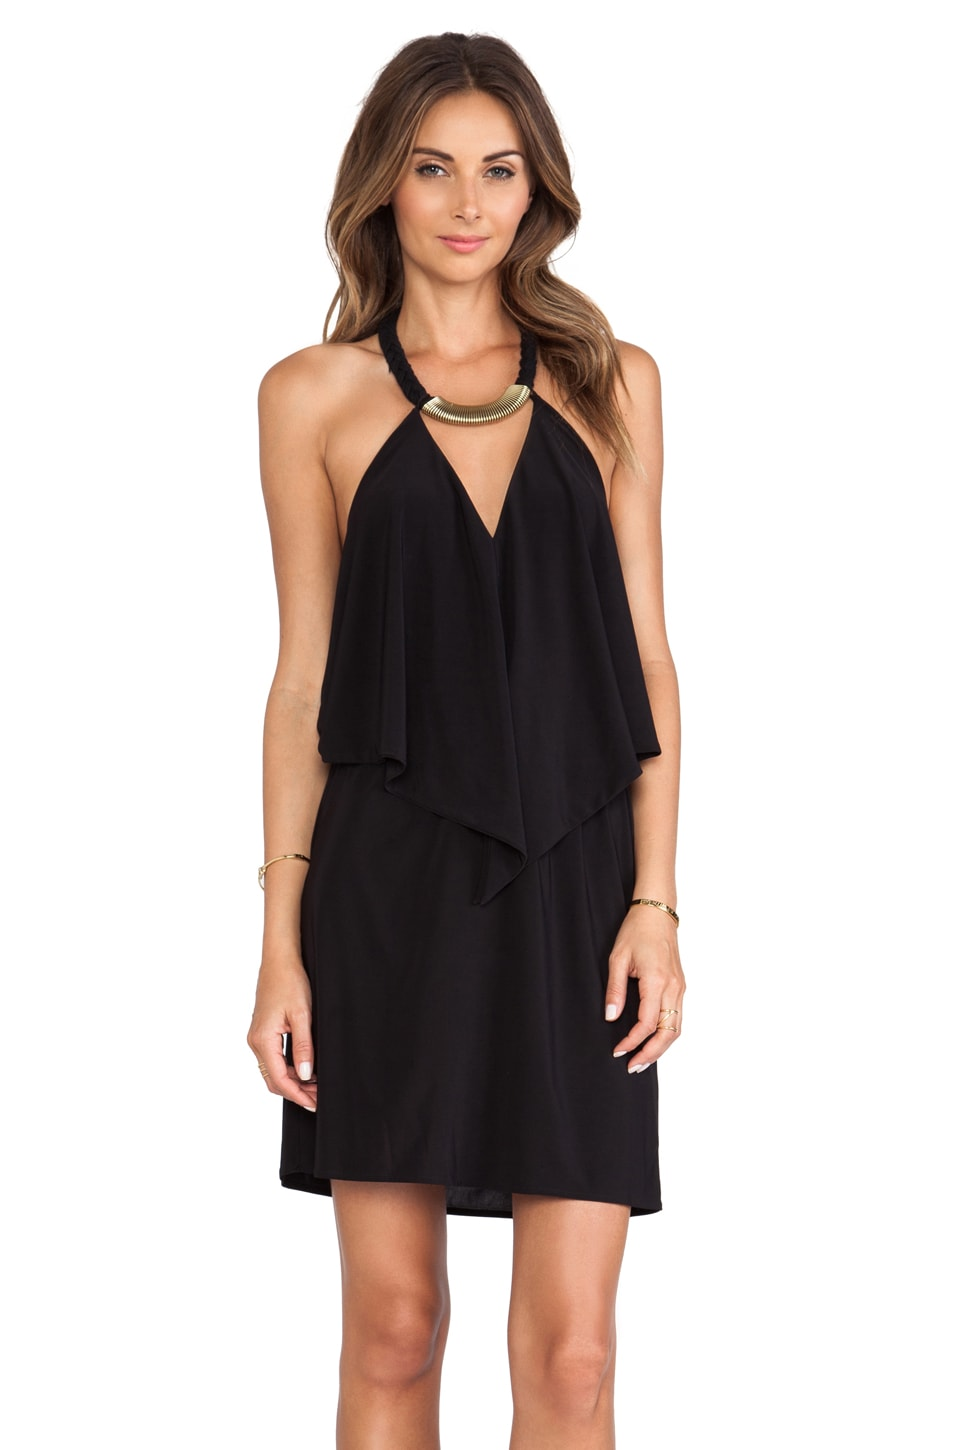 T-Bags LosAngeles Halter Cutout Mini Dress in Black